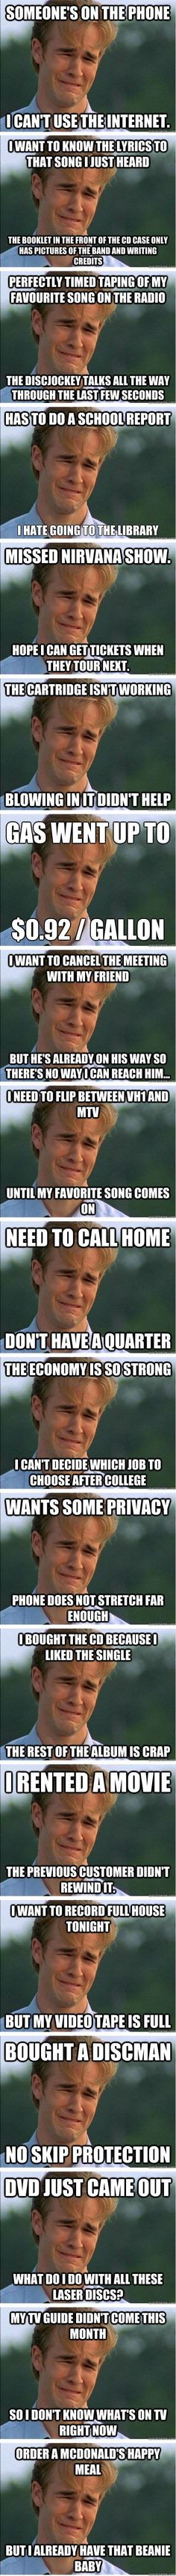 This is fairly funny and accurate, though I think most of it more aptly applies to Gen X and those coming of age in the 80s. The one about the economy is flat out wrong. The US economy was in a recession from 1990-1994/5- and those of us who graduated from college in the early 90s knew it, and are still paying for that reality. - 90s problems.